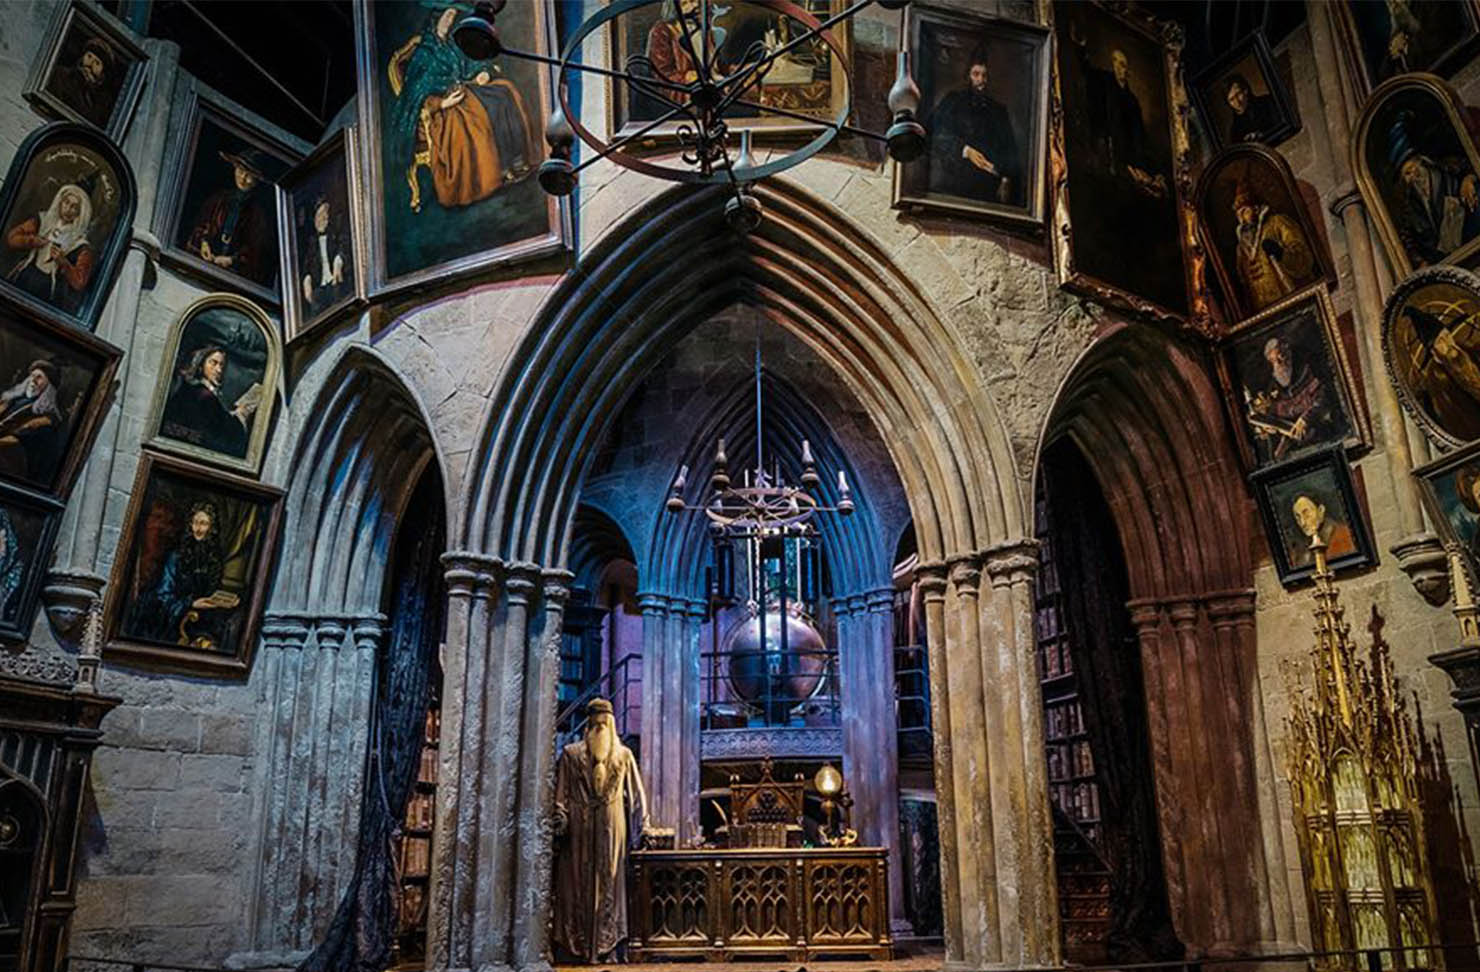 inside dumbledore's office on the harry potter studio tour in london